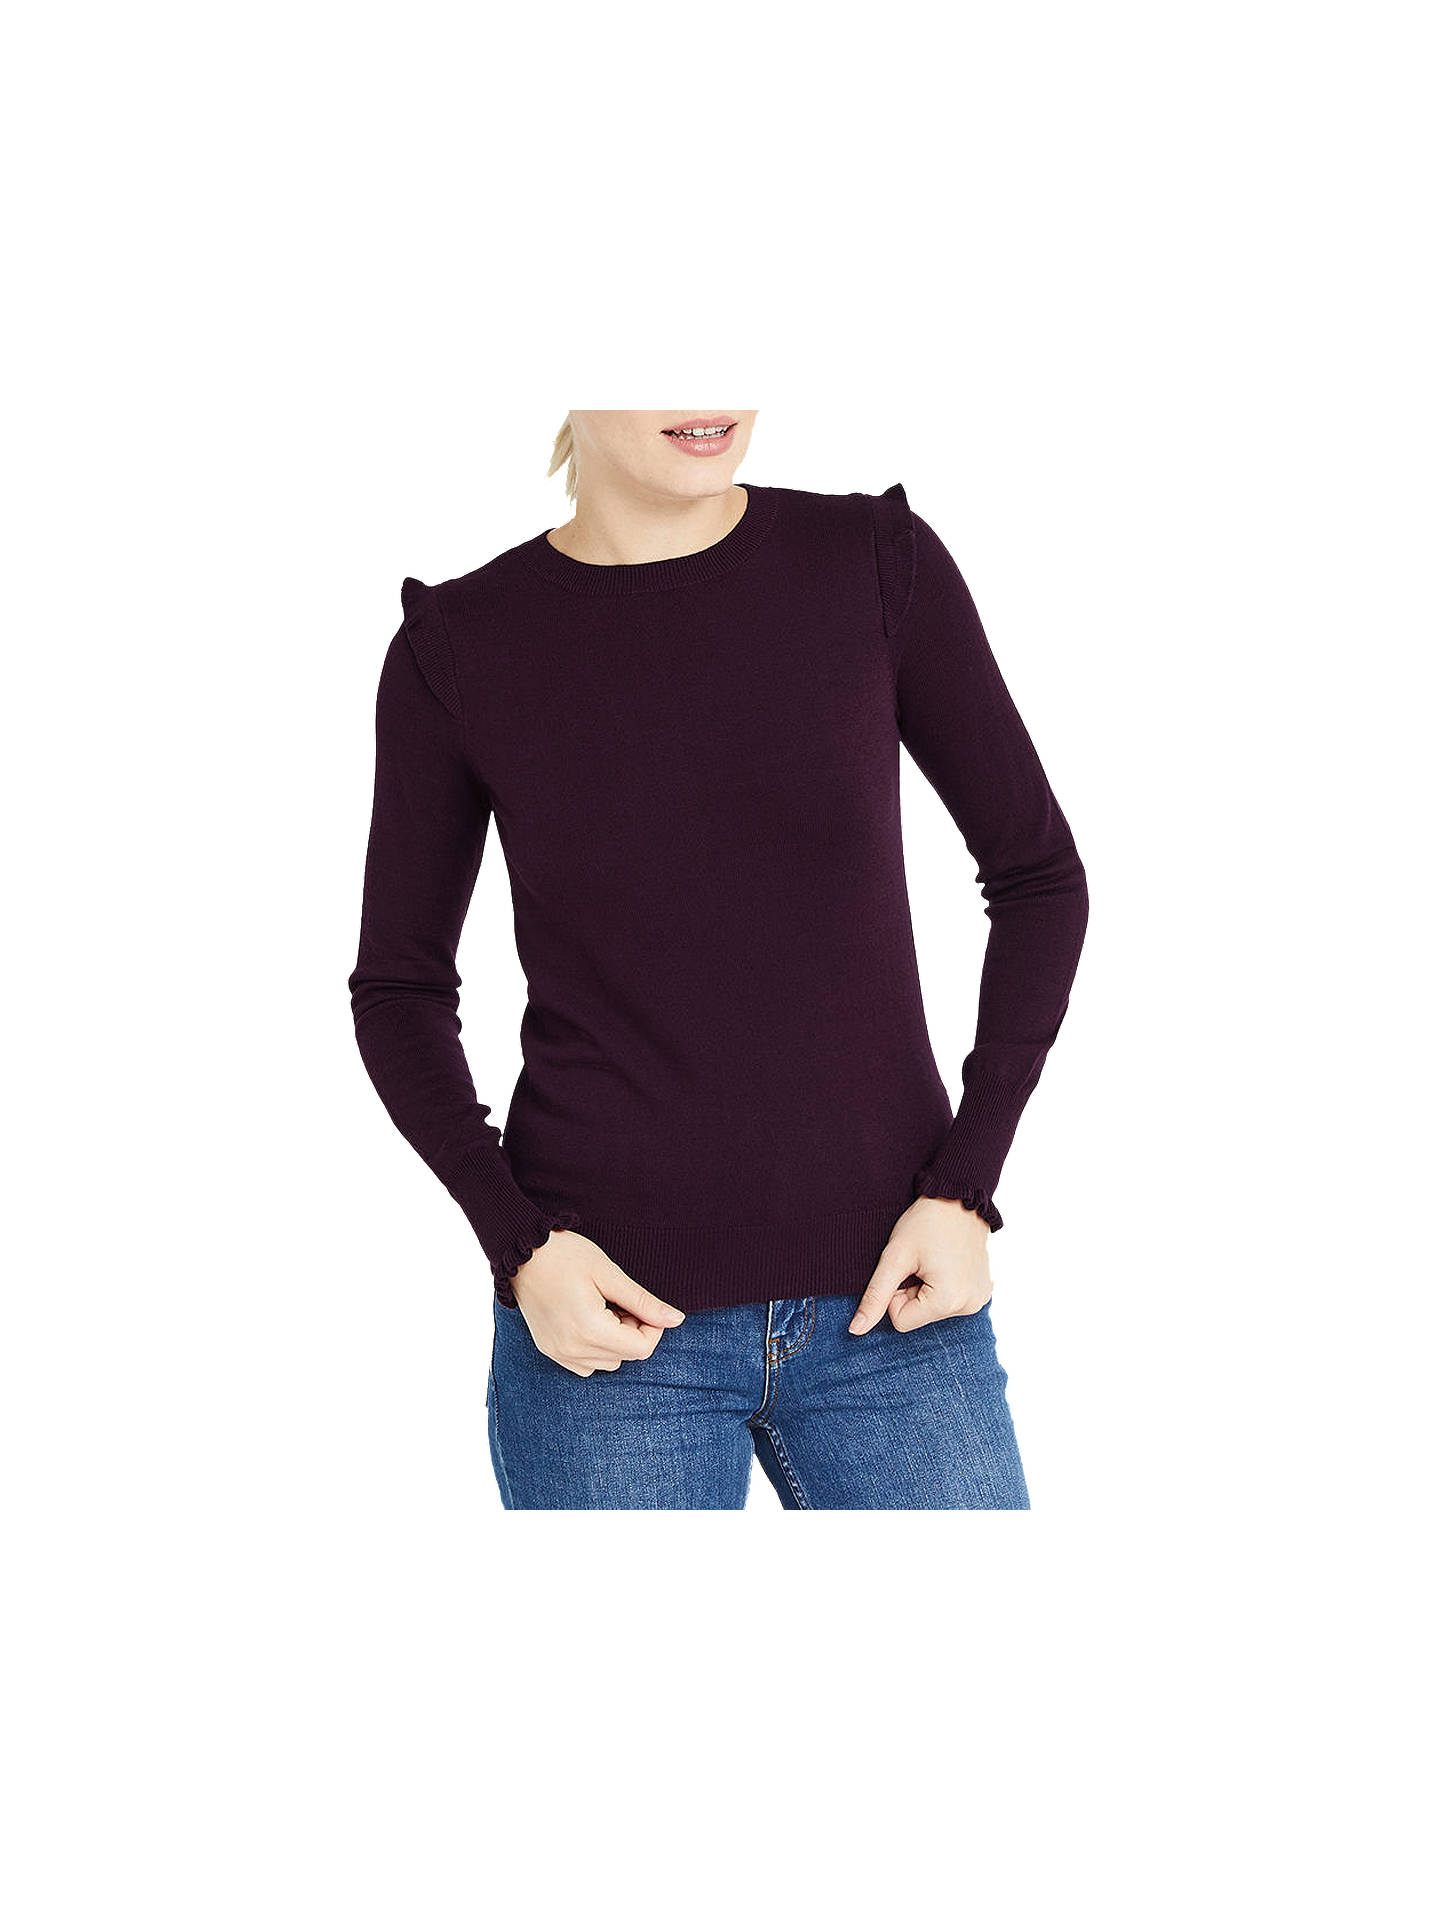 BuyOasis Frill Shoulder and Cuff Knitted Top, Burgundy, XS Online at johnlewis.com